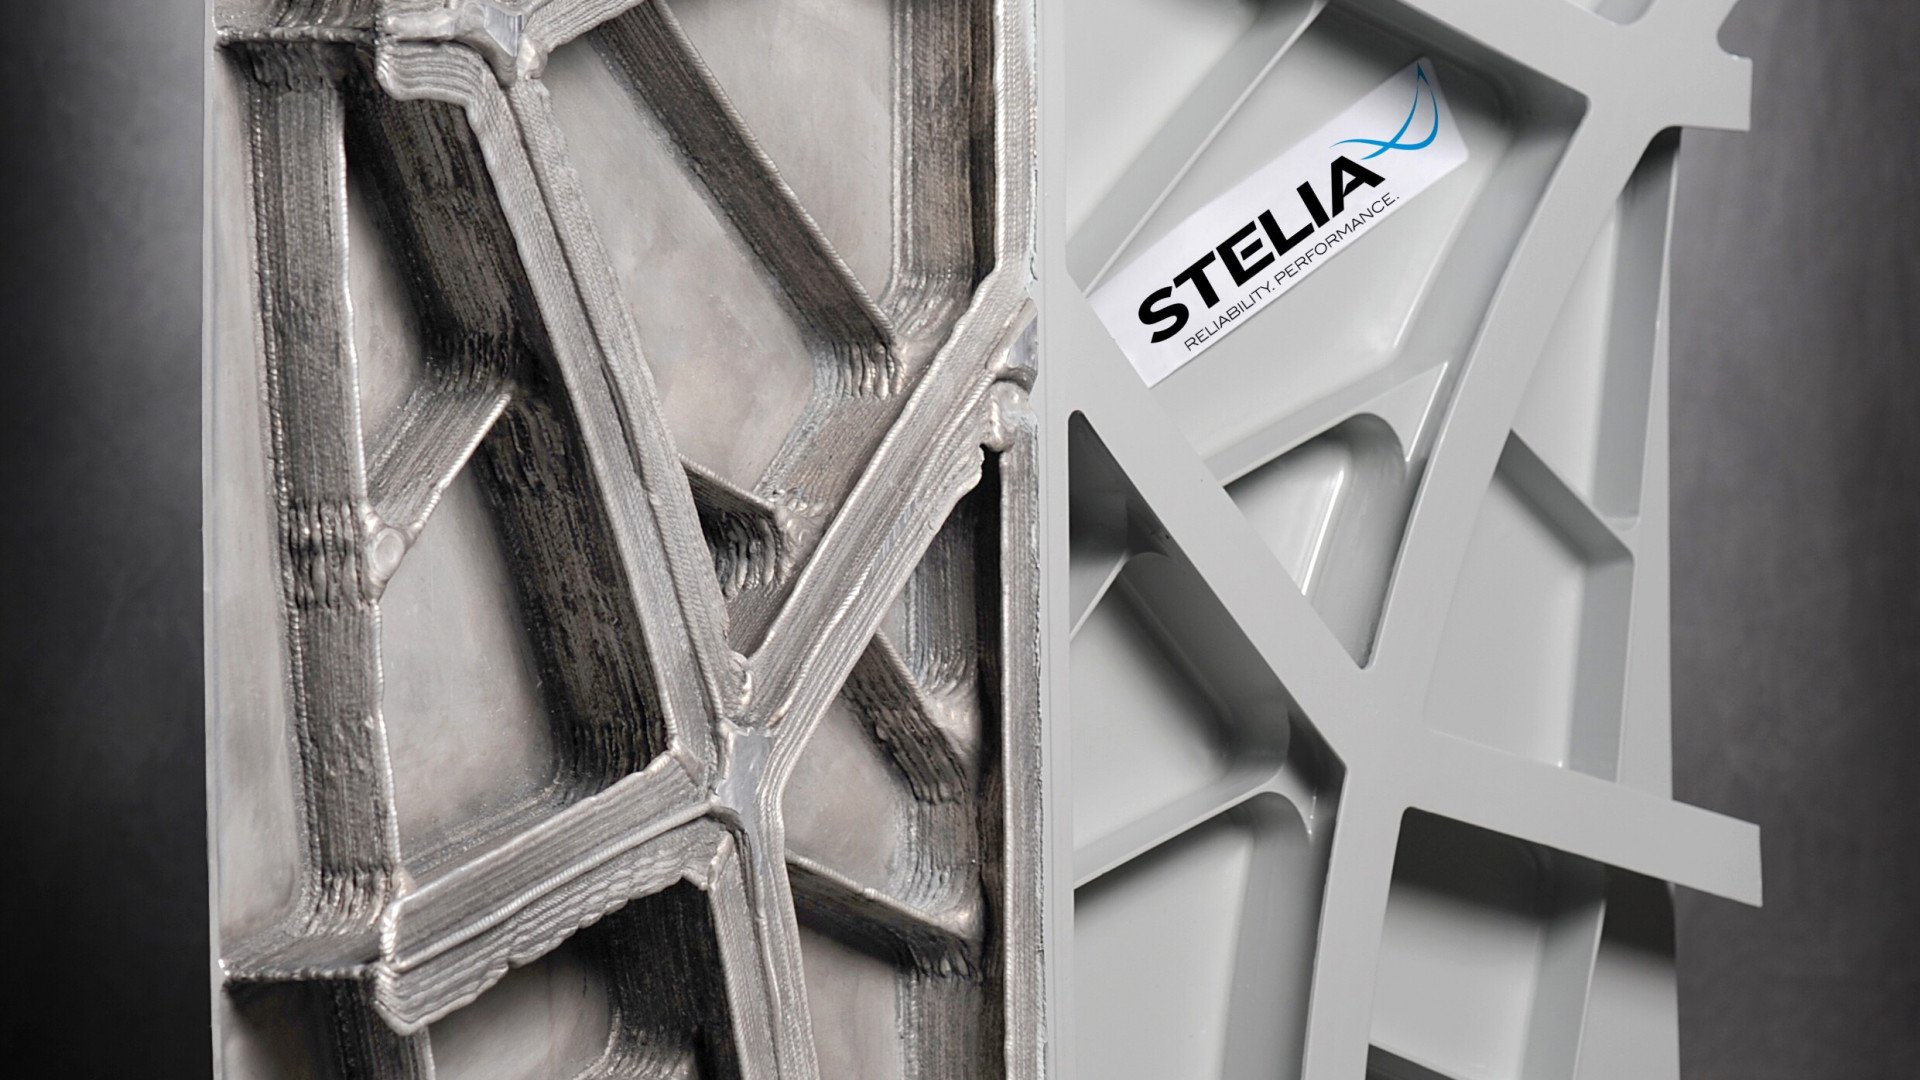 Stelia Aerospace Demos Cheap, Light and Strong Aircraft Fuselage Using WAAM | All3DP